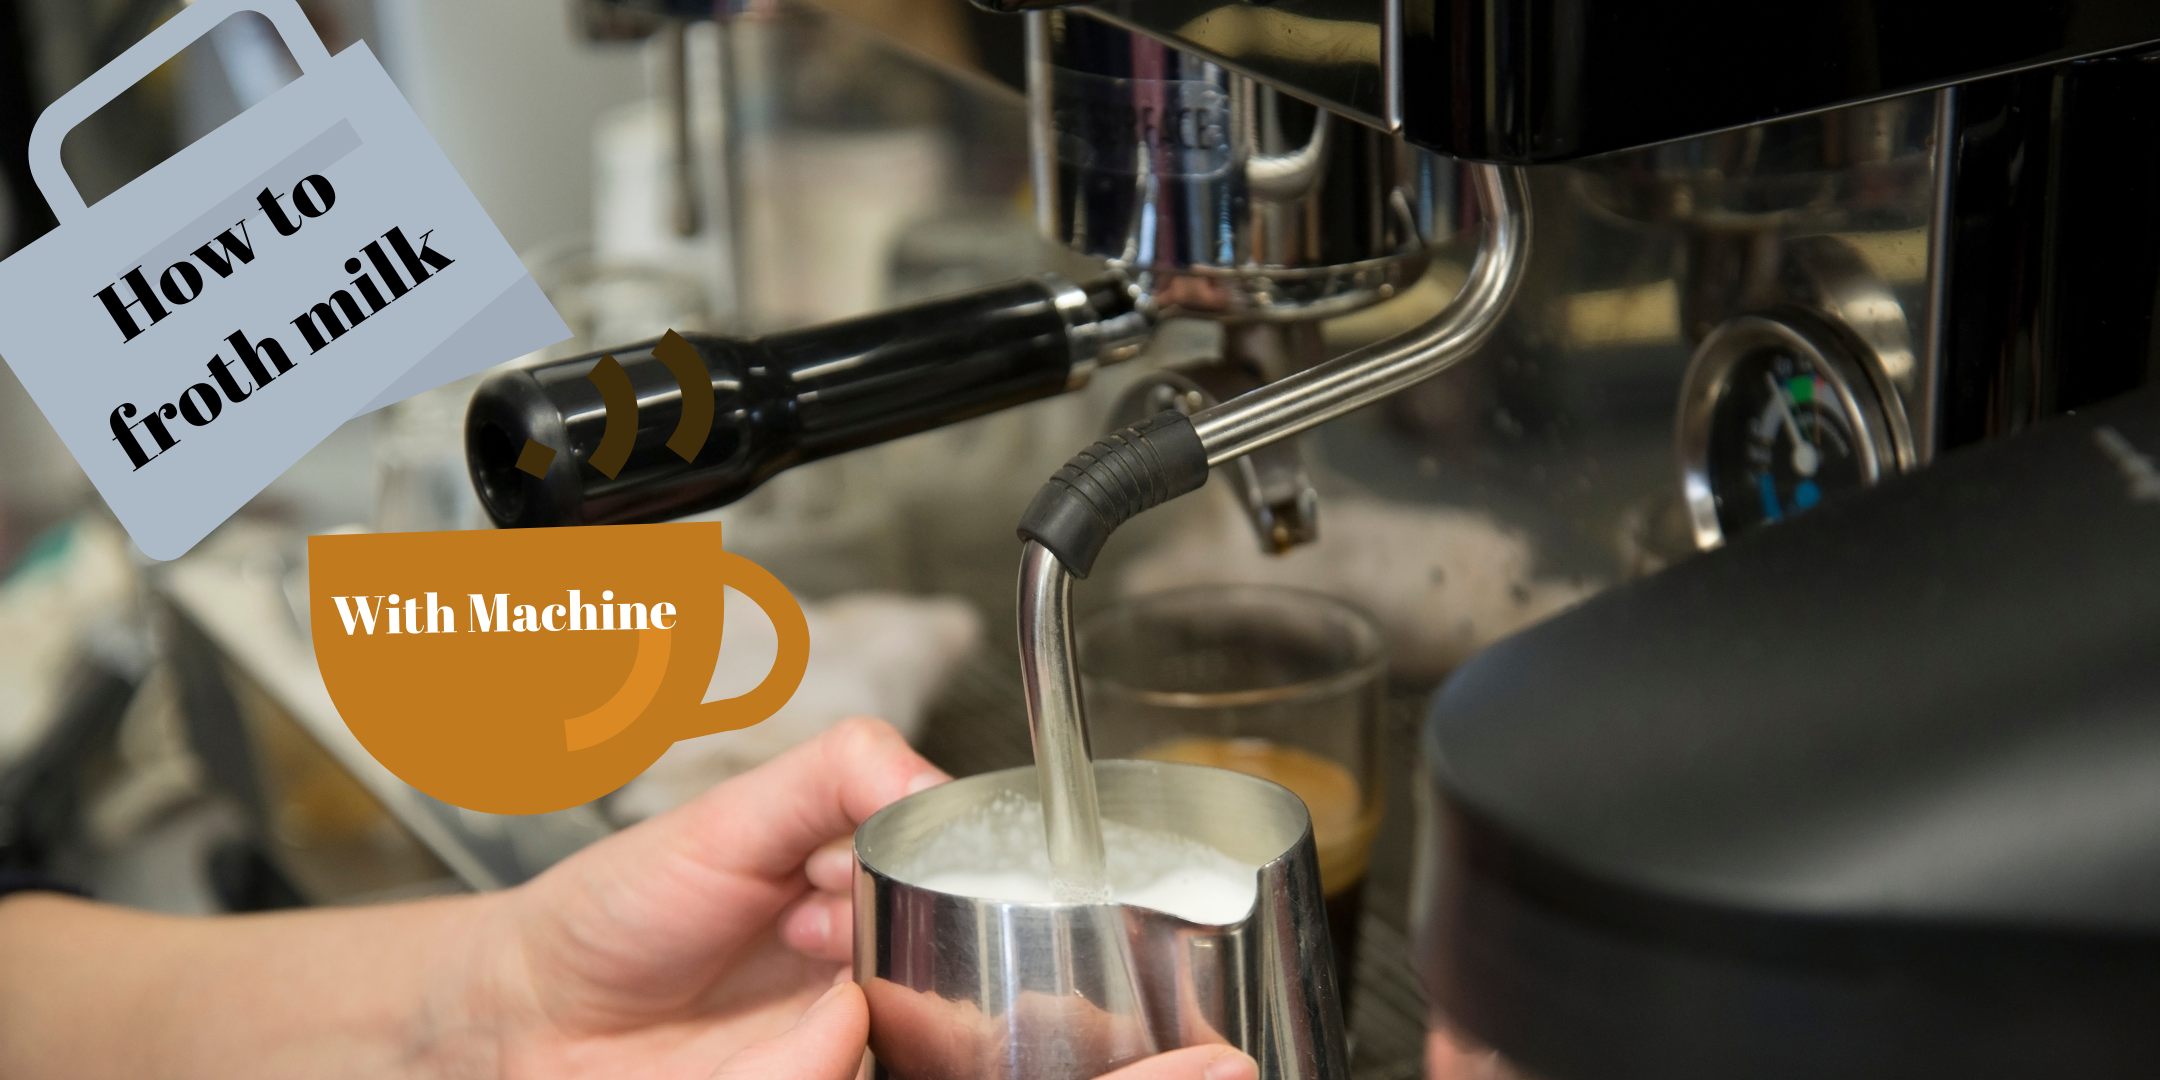 How to froth milk with an espresso machine